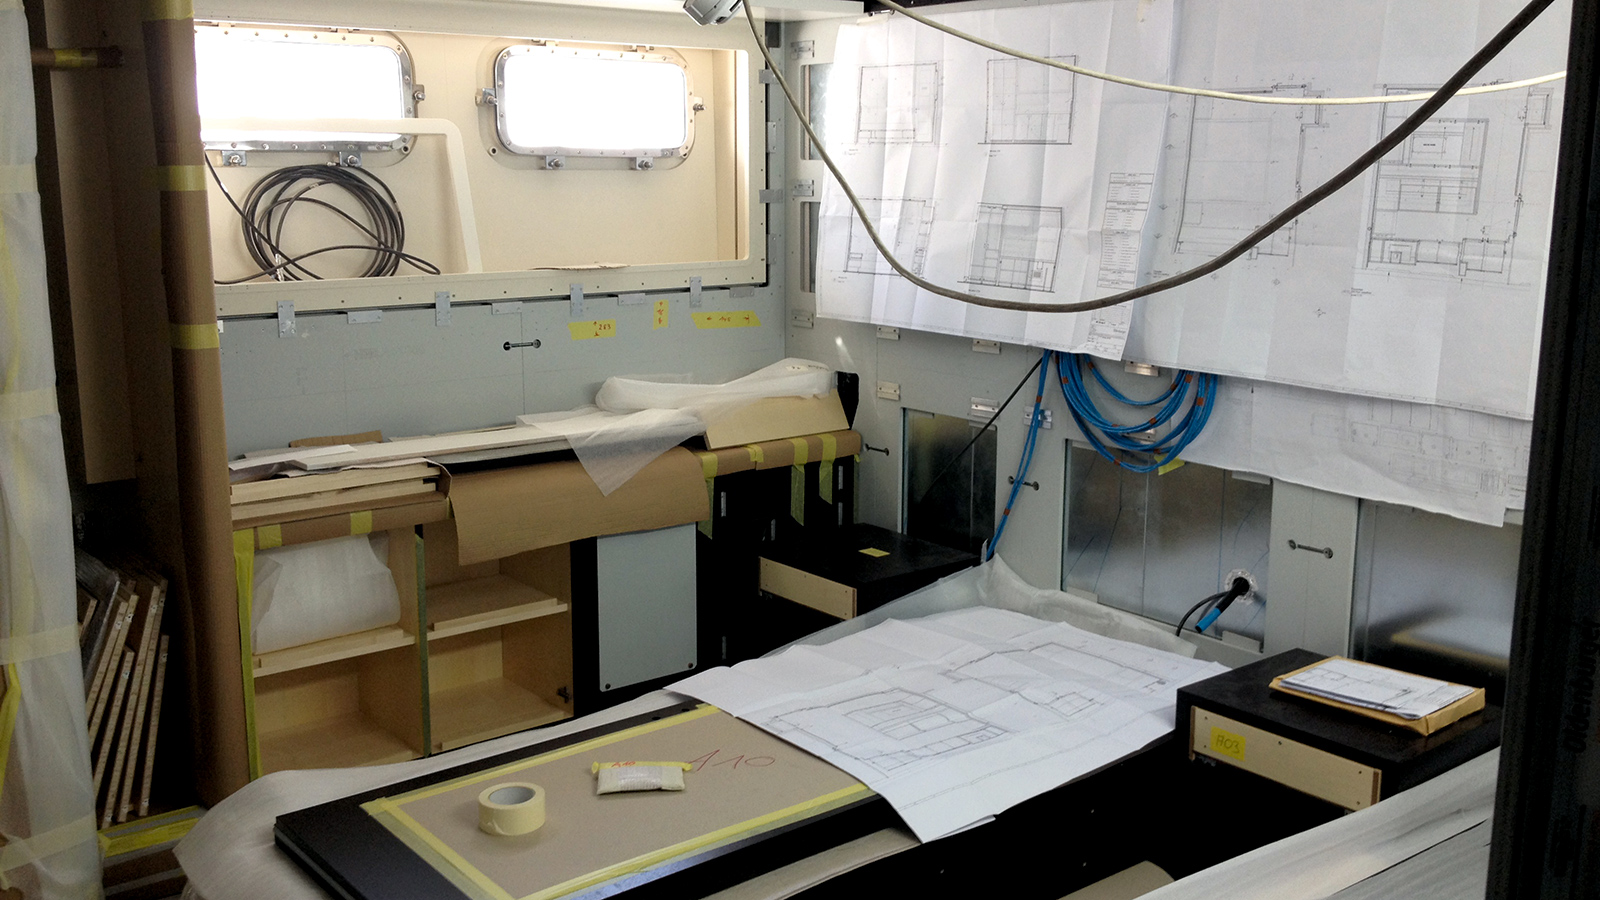 guest-cabin-of-classic-feadship-super-yacht-mirage-during-refit